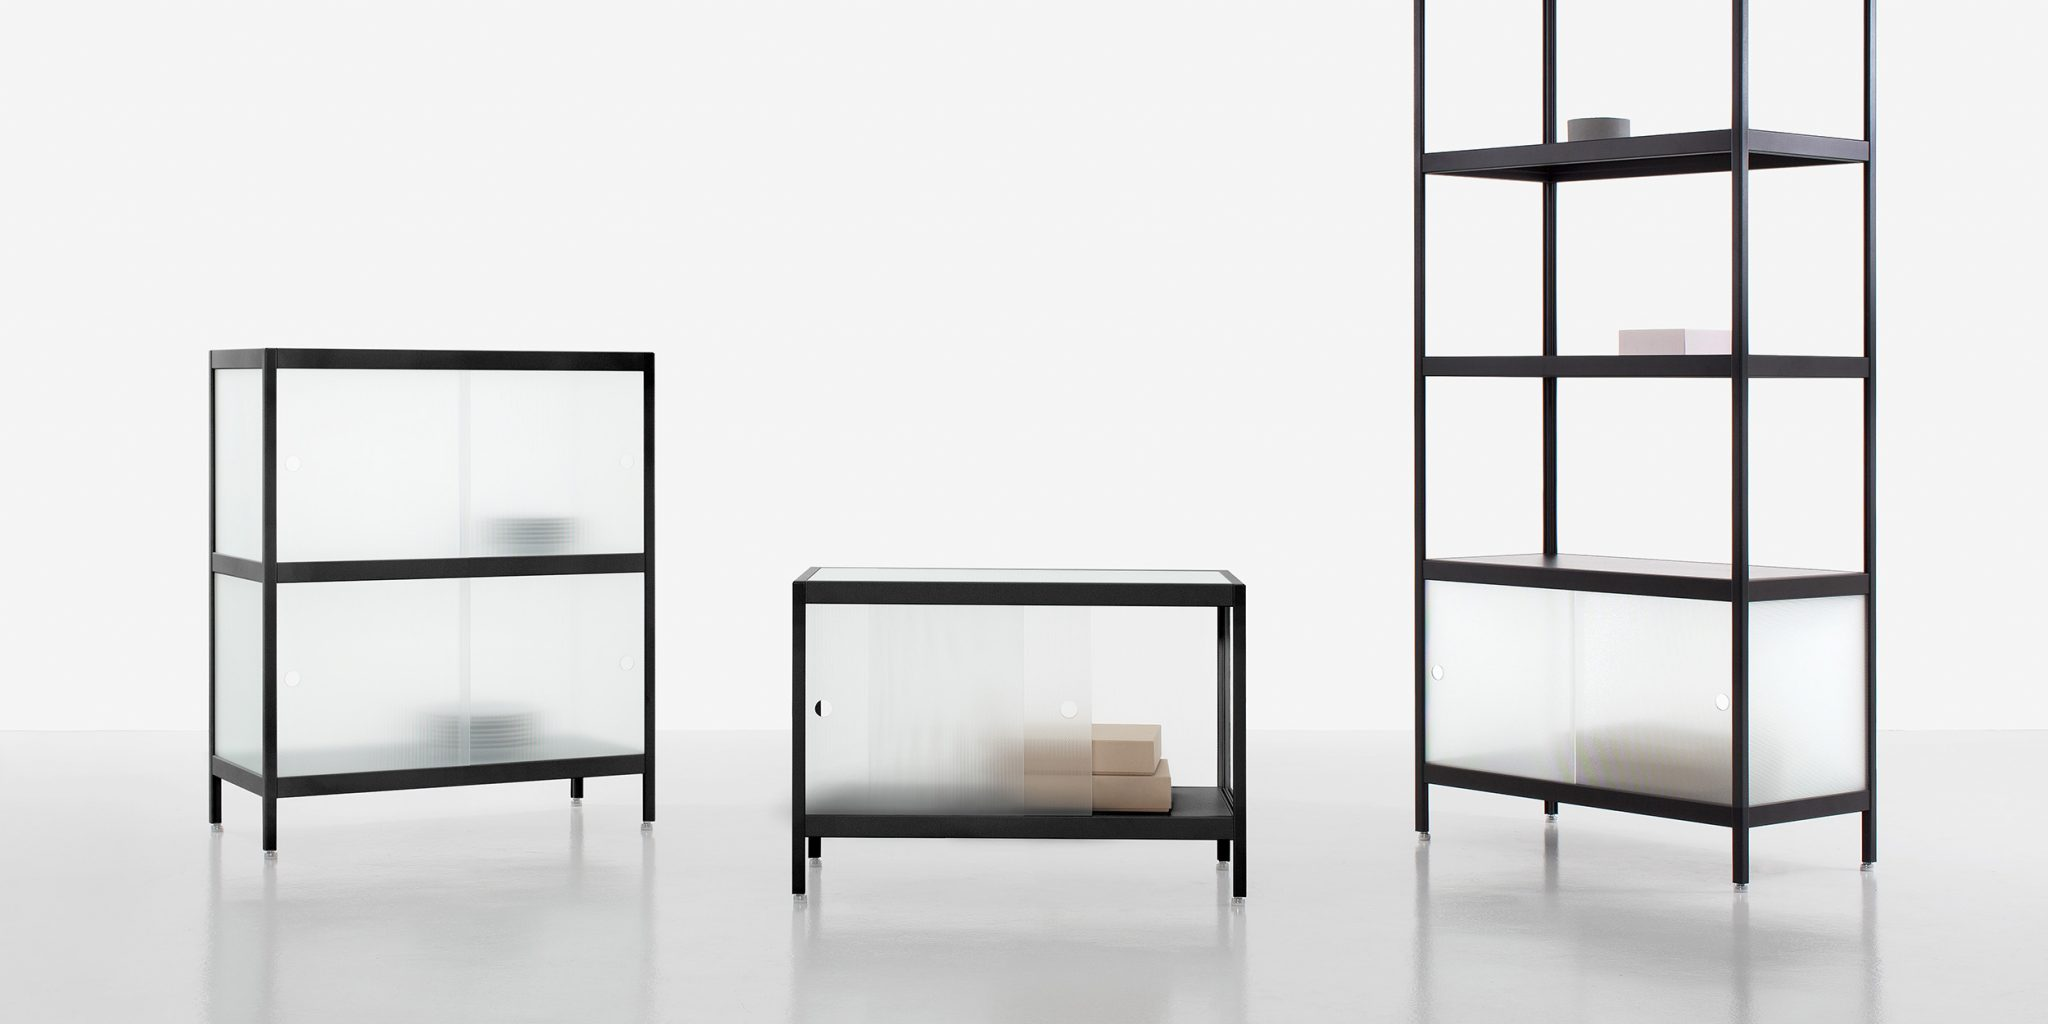 mist collection design by julien renault pour les meubles kewlox. Black Bedroom Furniture Sets. Home Design Ideas